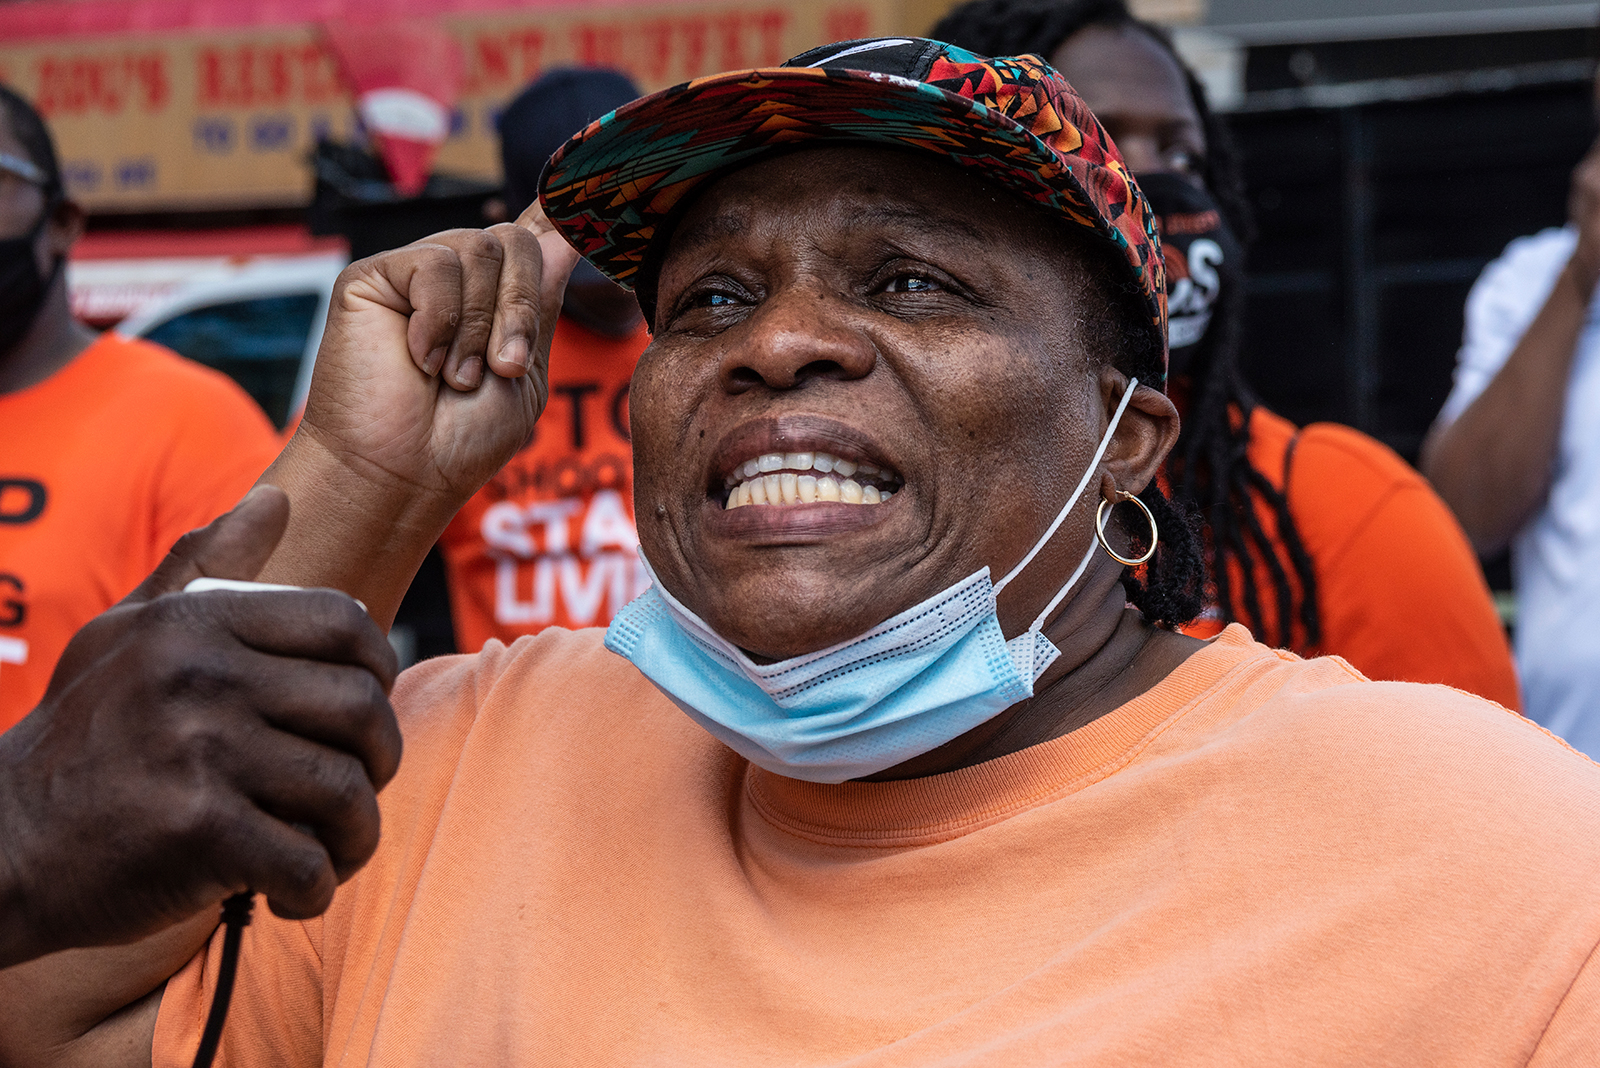 Black and Latino communities face another public health crisis amid the pandemic — gun violence